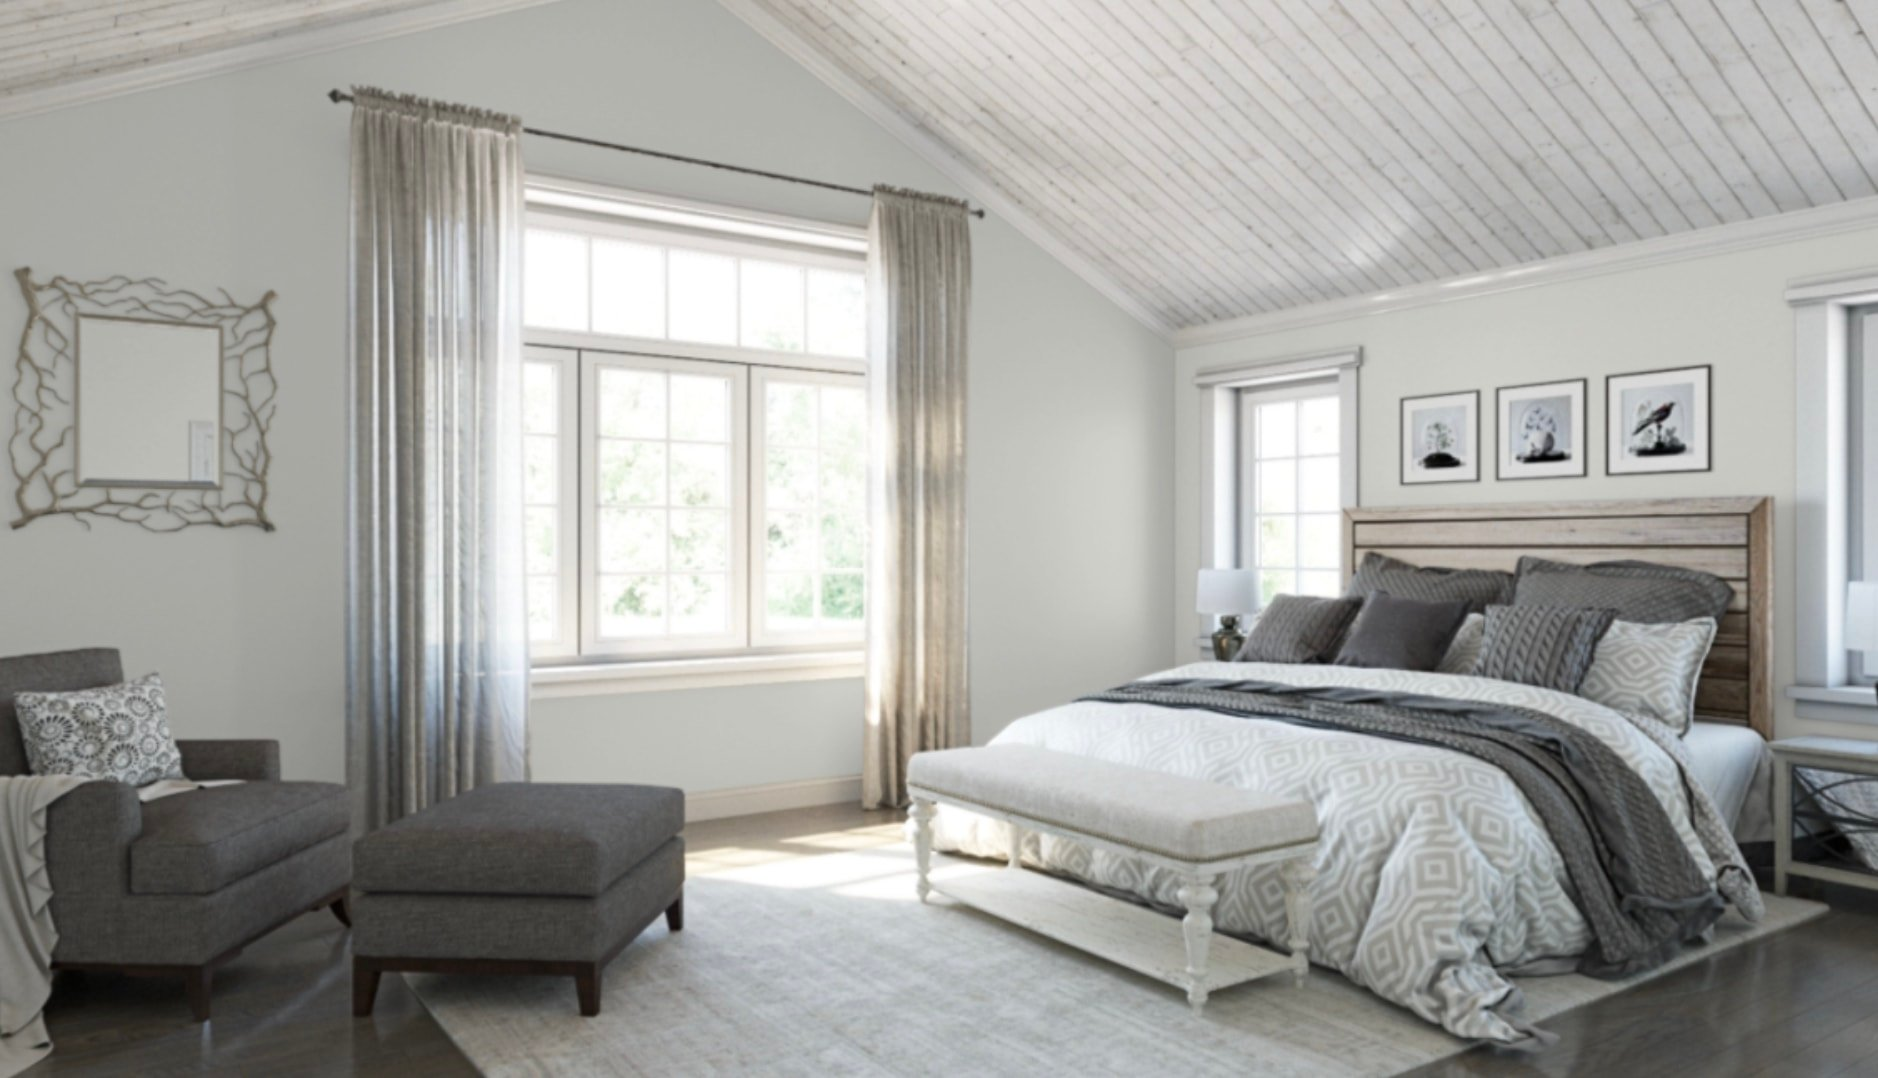 light colored bedroom with walls painted sherwin williams silverpointe